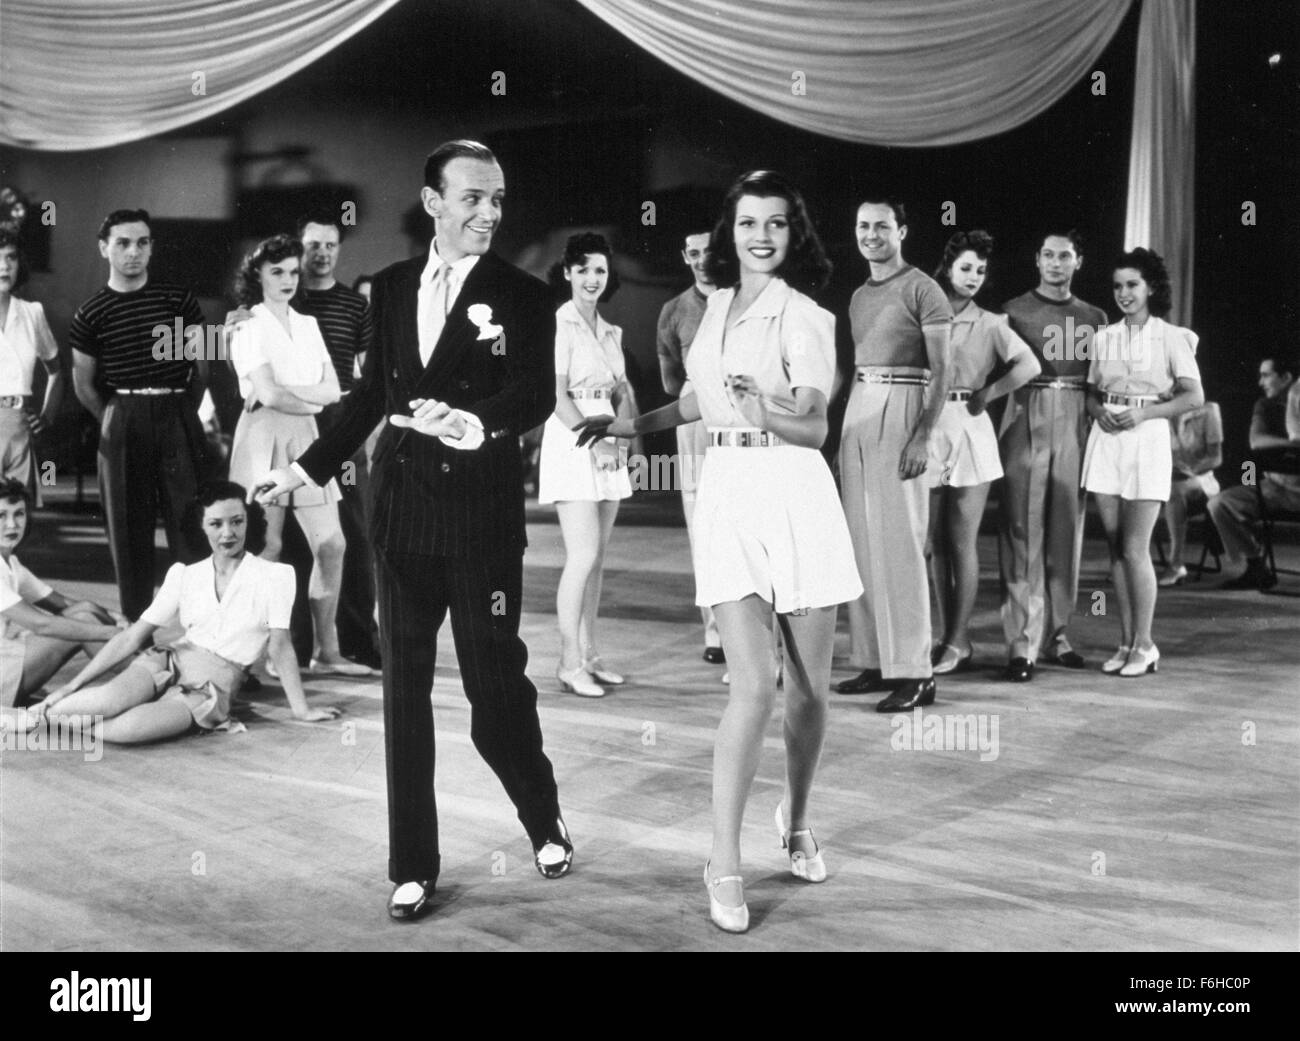 1941, Film Title: YOU'LL NEVER GET RICH, Director: SIDNEY LANFIELD, Studio: COLUMBIA, Pictured: FRED ASTAIRE, DANCING, Stock Photo